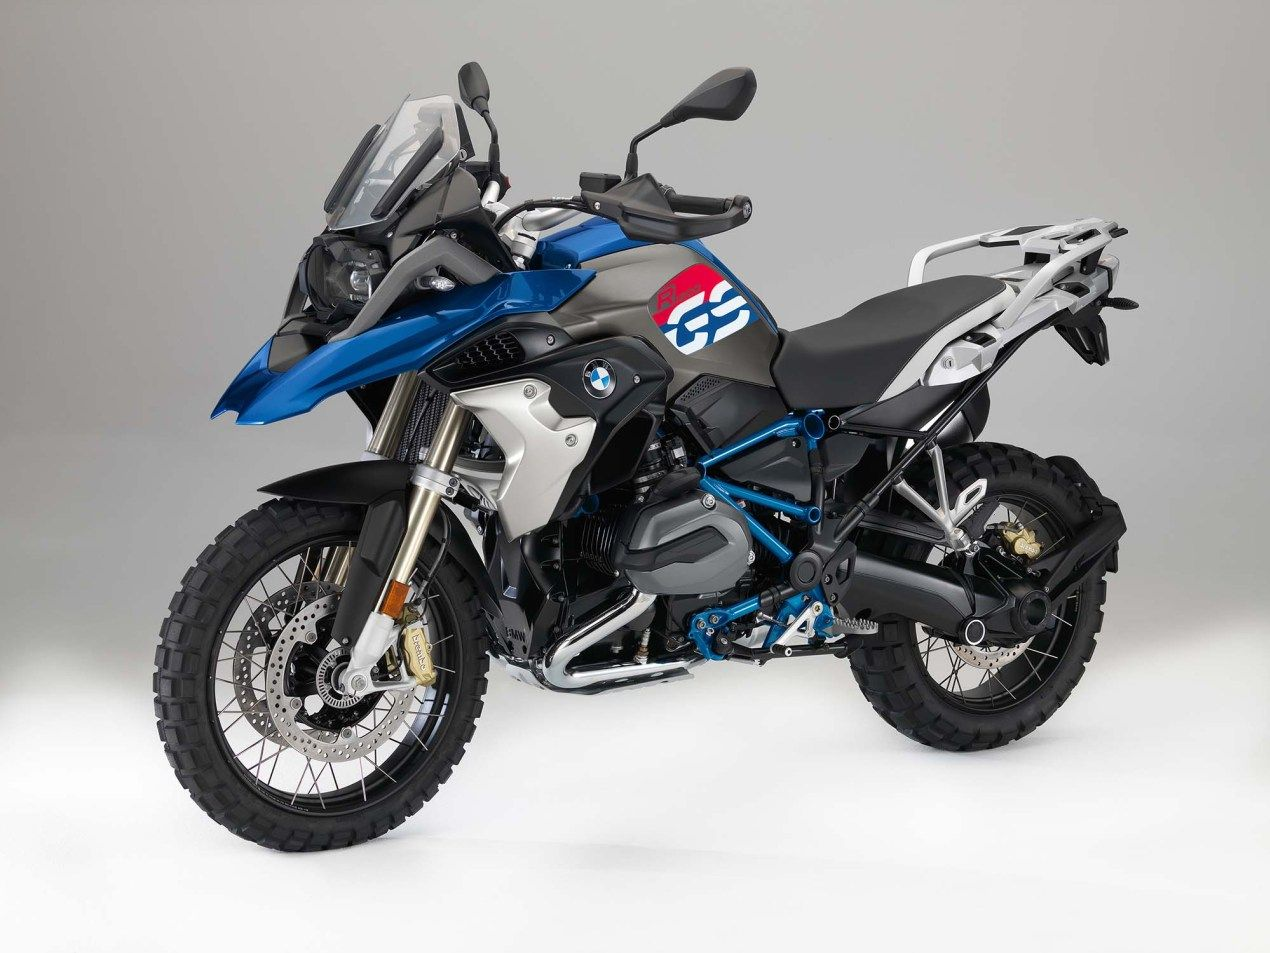 2017 Bmw R1200gs Gets Upgrades And A Little Rallye I 2020